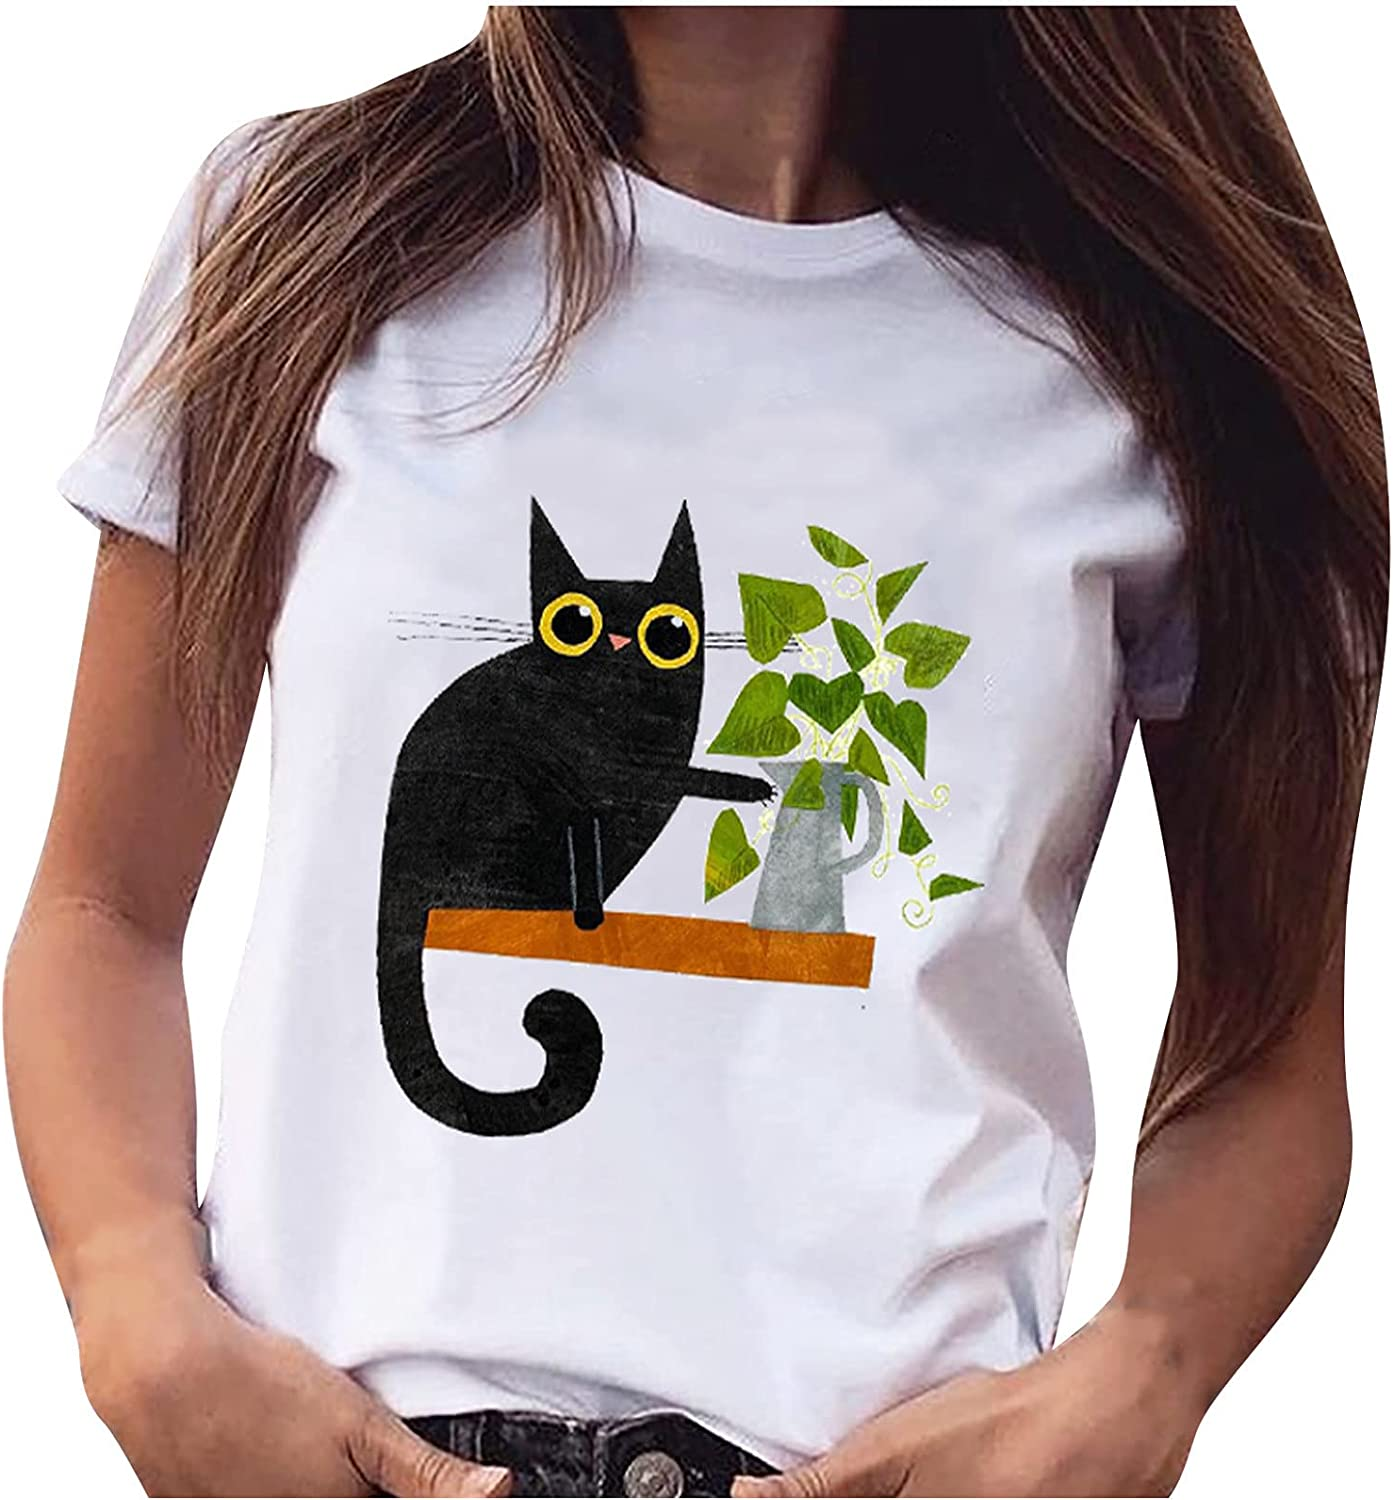 Women Plus Size Short Sleeve Crewneck Max 51% OFF Summer T-Shirt Manufacturer direct delivery Funny Print